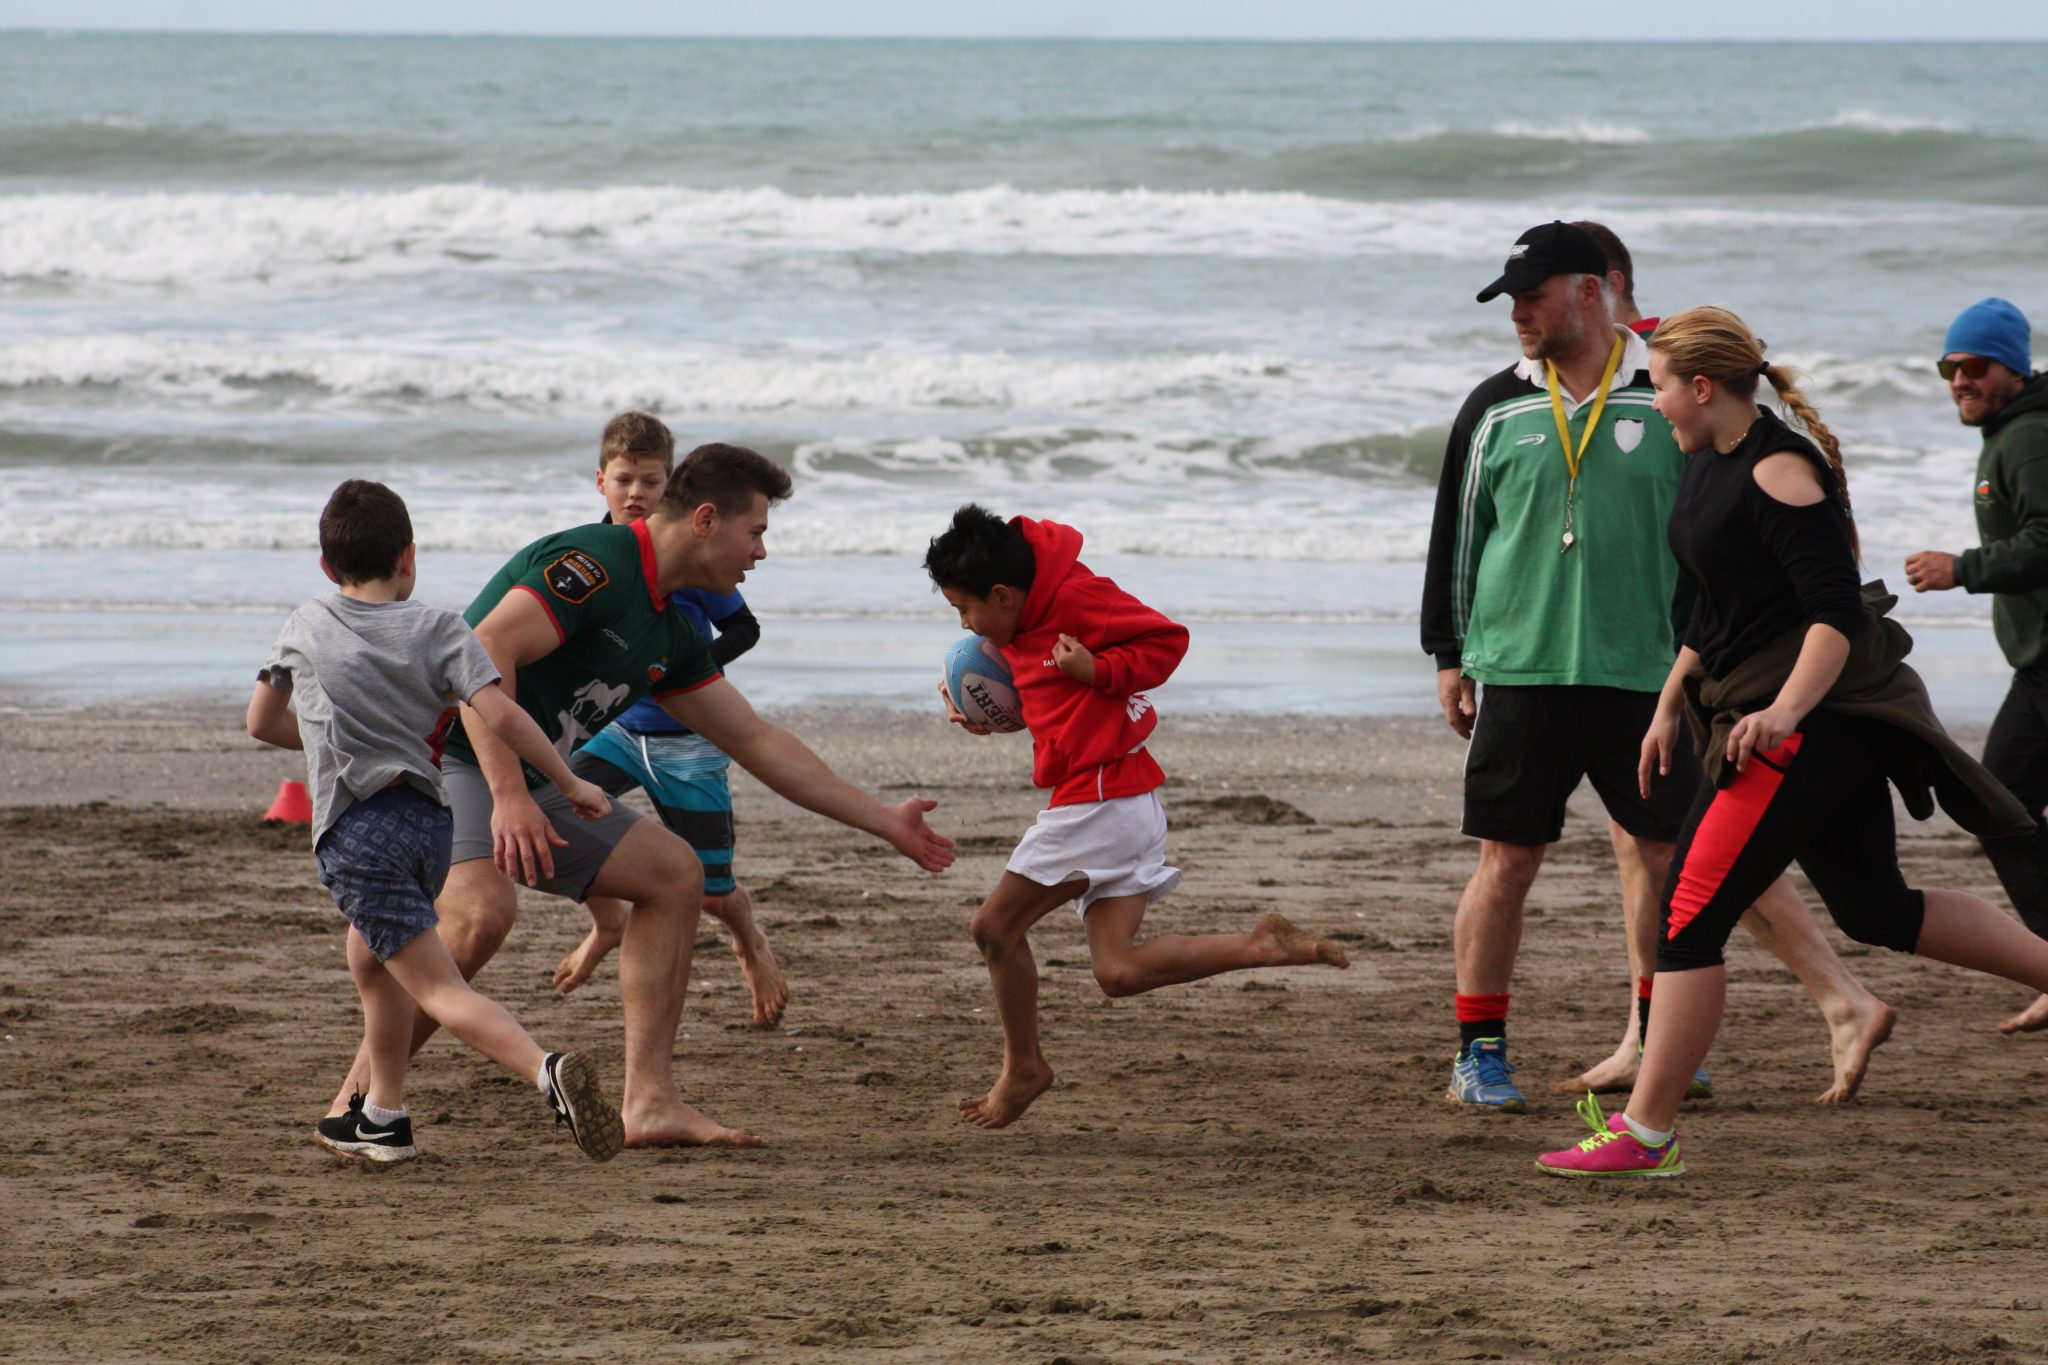 The young ones taught Wairarapa-Bush players a thing or two about rugby. PHOTO/KJ LIDDLE